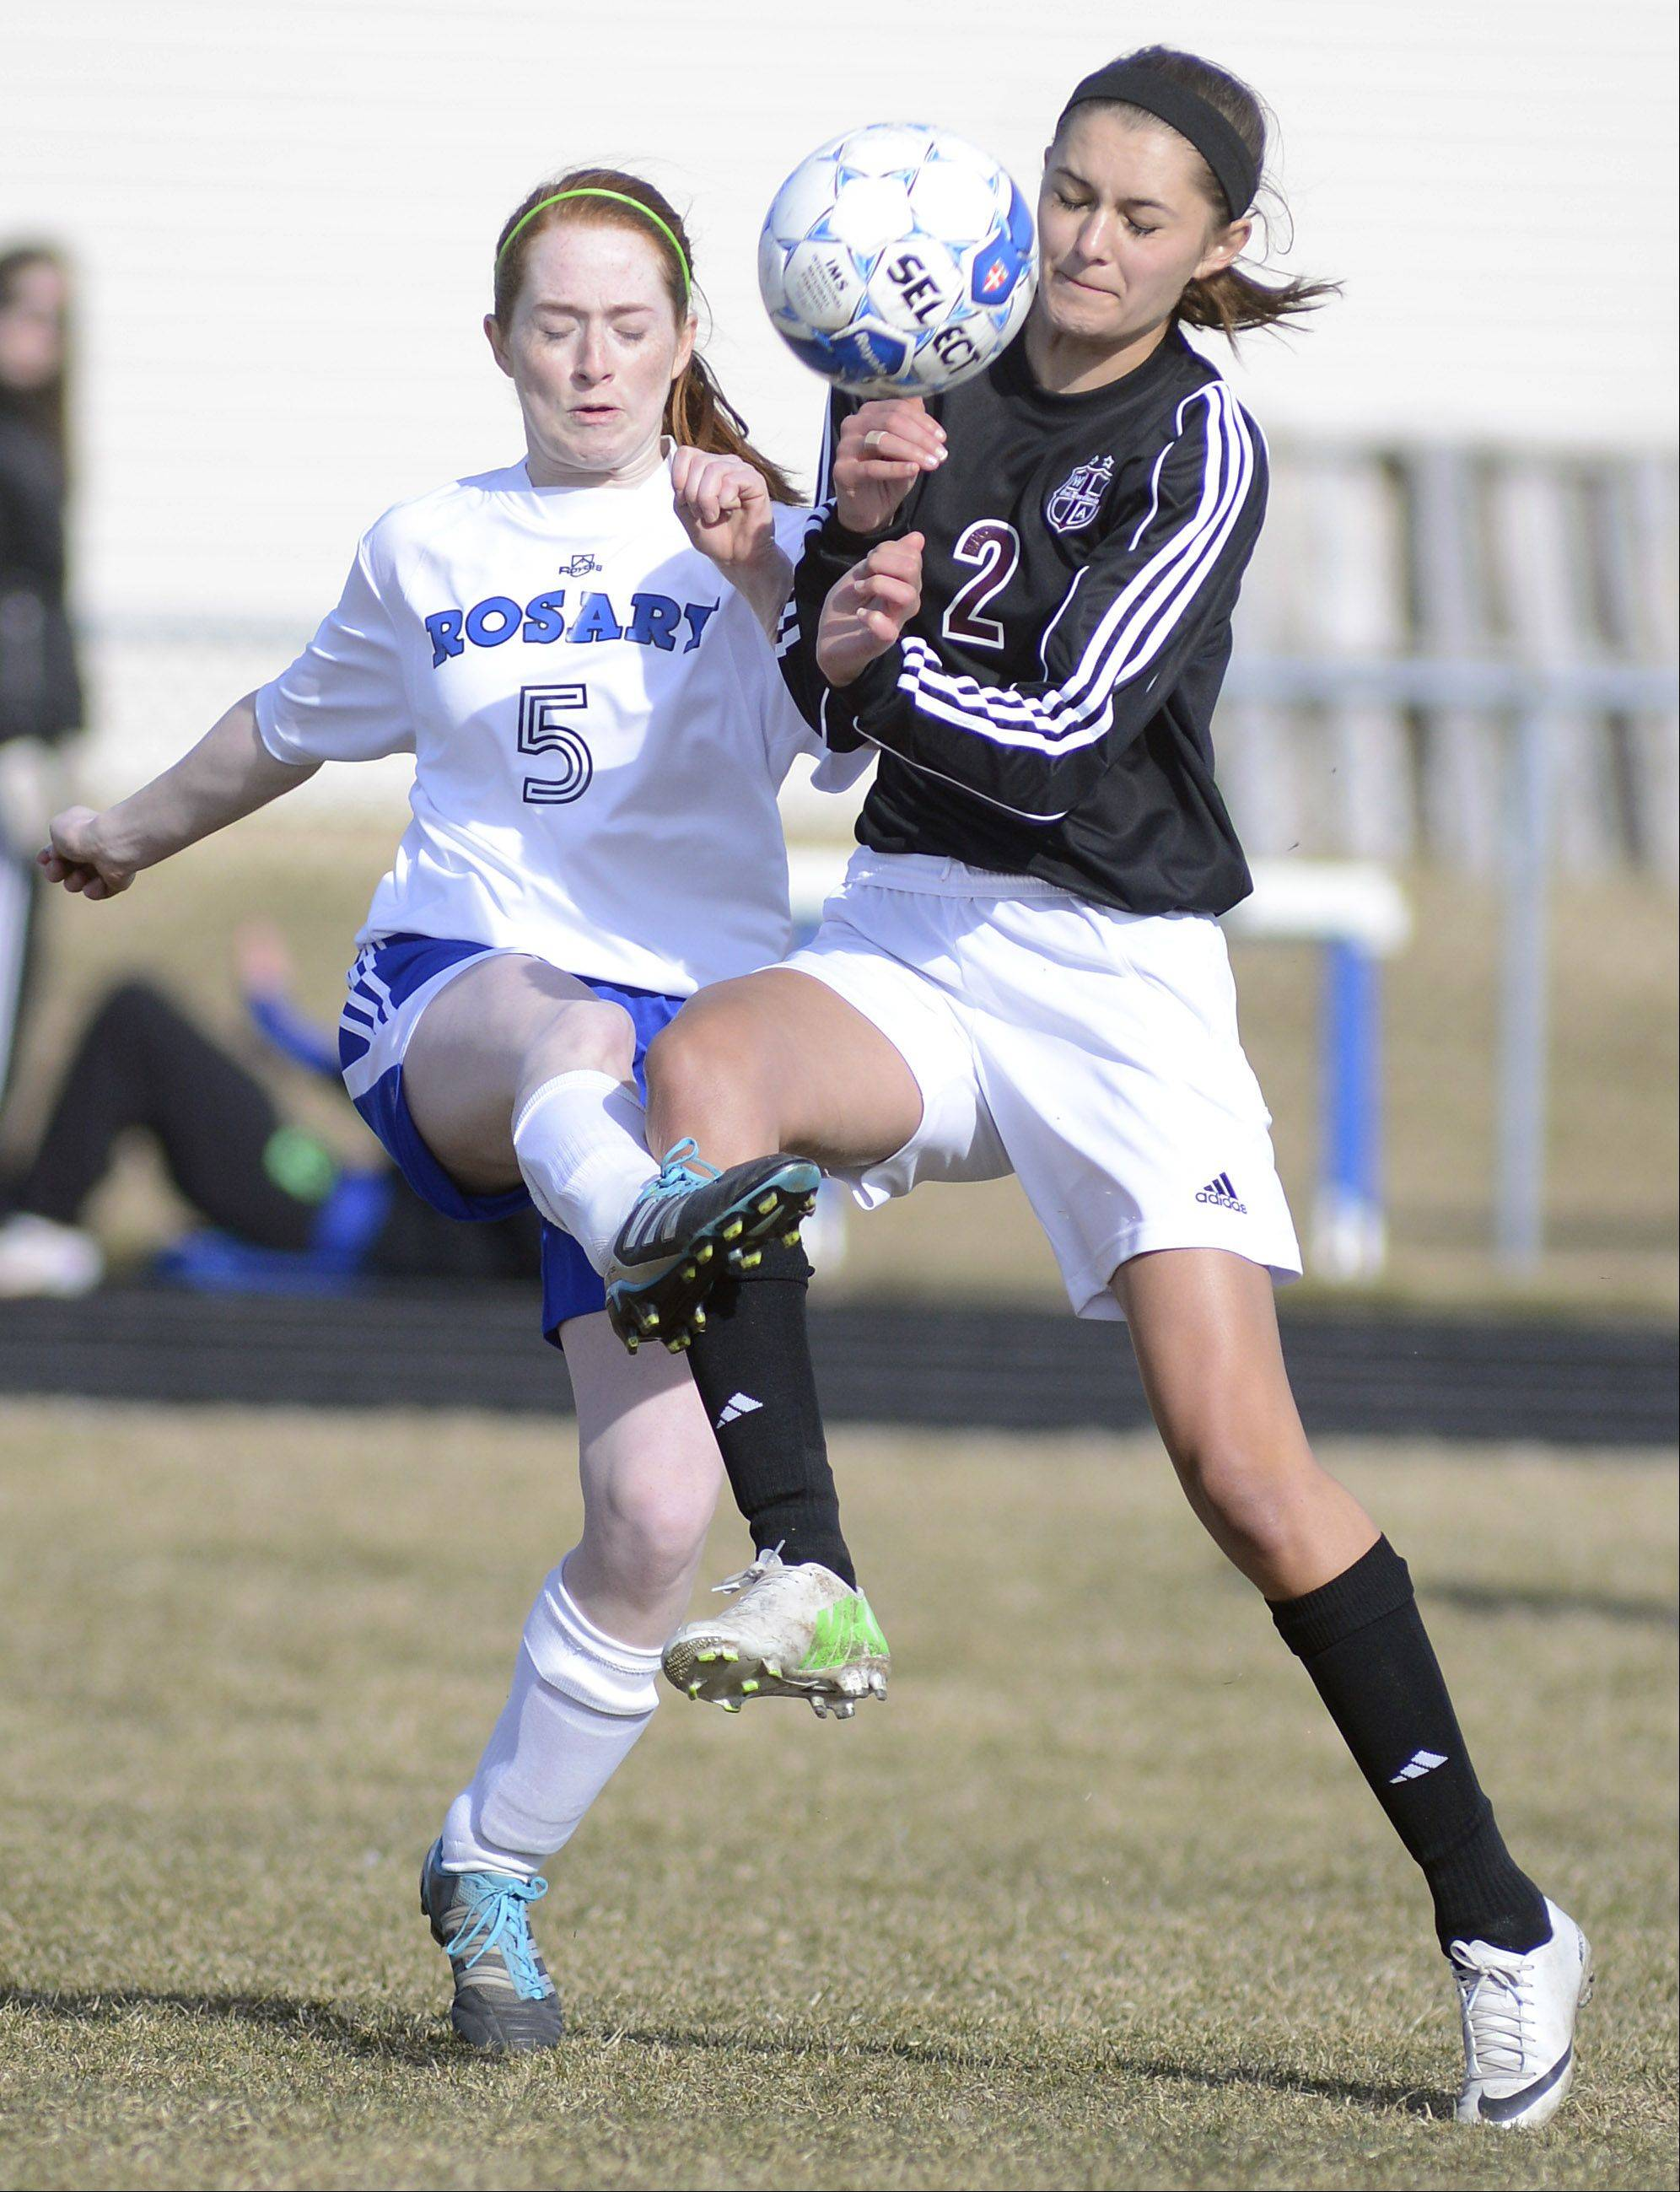 Rosary's Haley Kilbride and Wheaton Academy's Molly Thorson collide while fighting for possession of the ball in the first half on Wednesday, April 3.